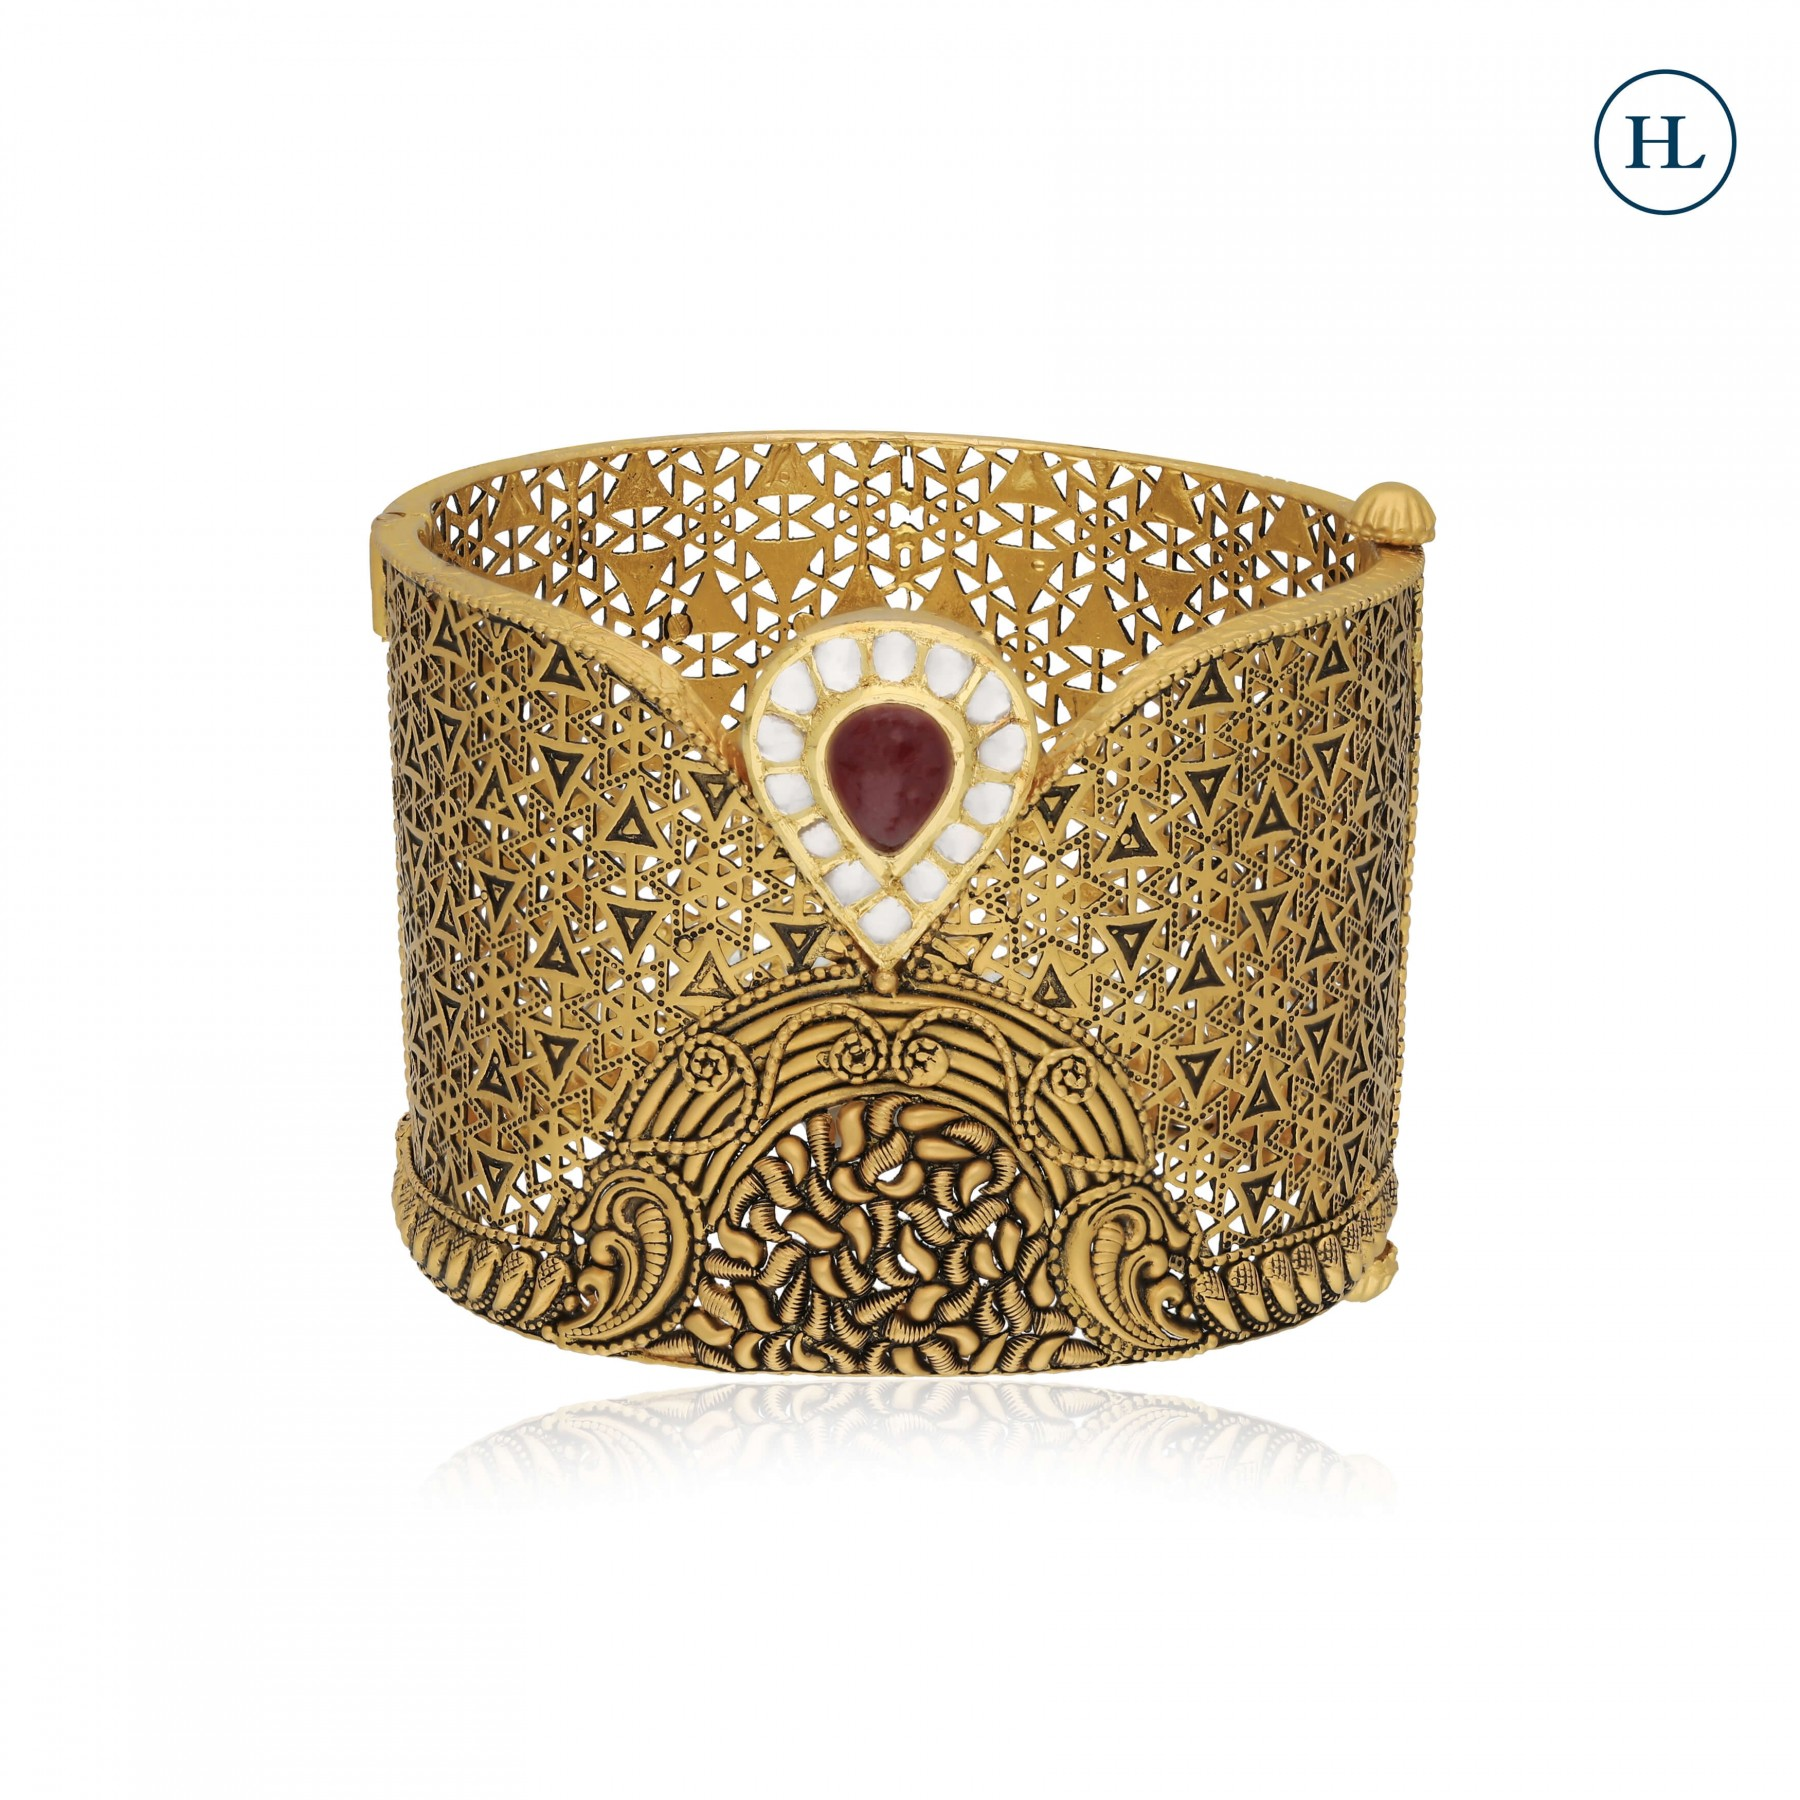 Antique-Styled Ruby & Gold Bangle